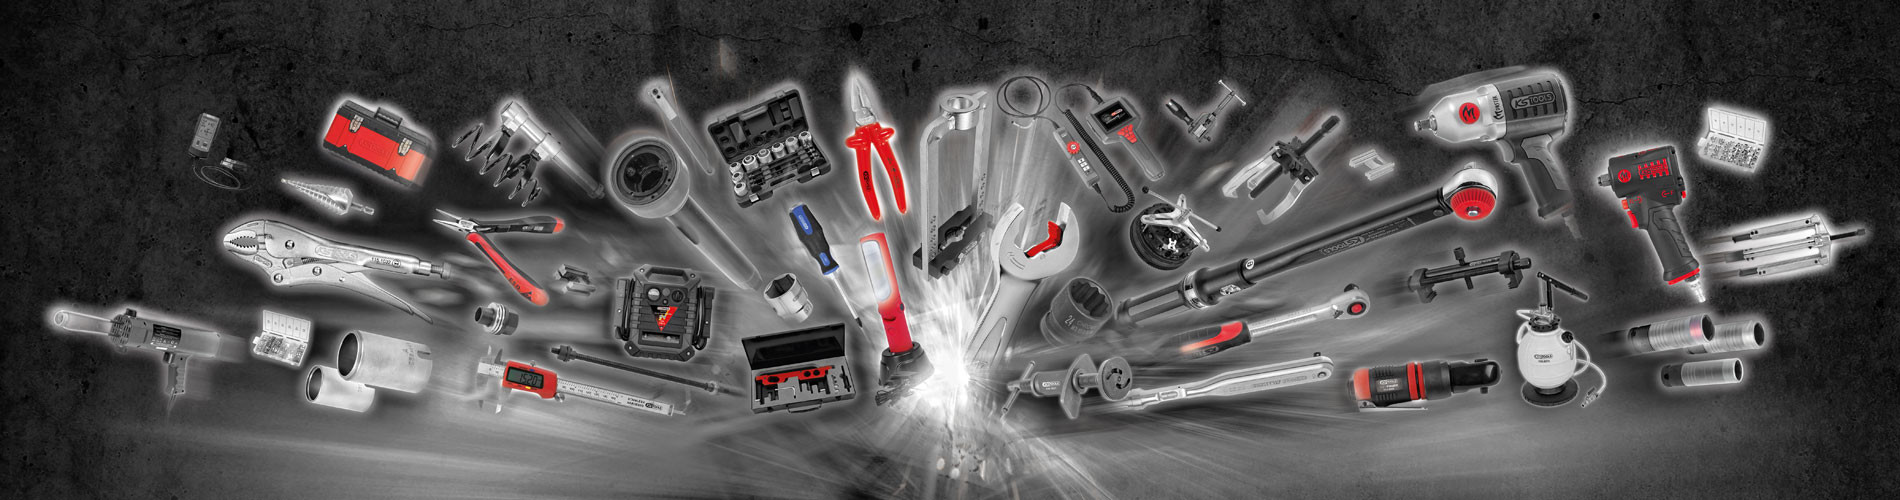 Hand tools catalogue | Industry and trade | Products | KS Tools